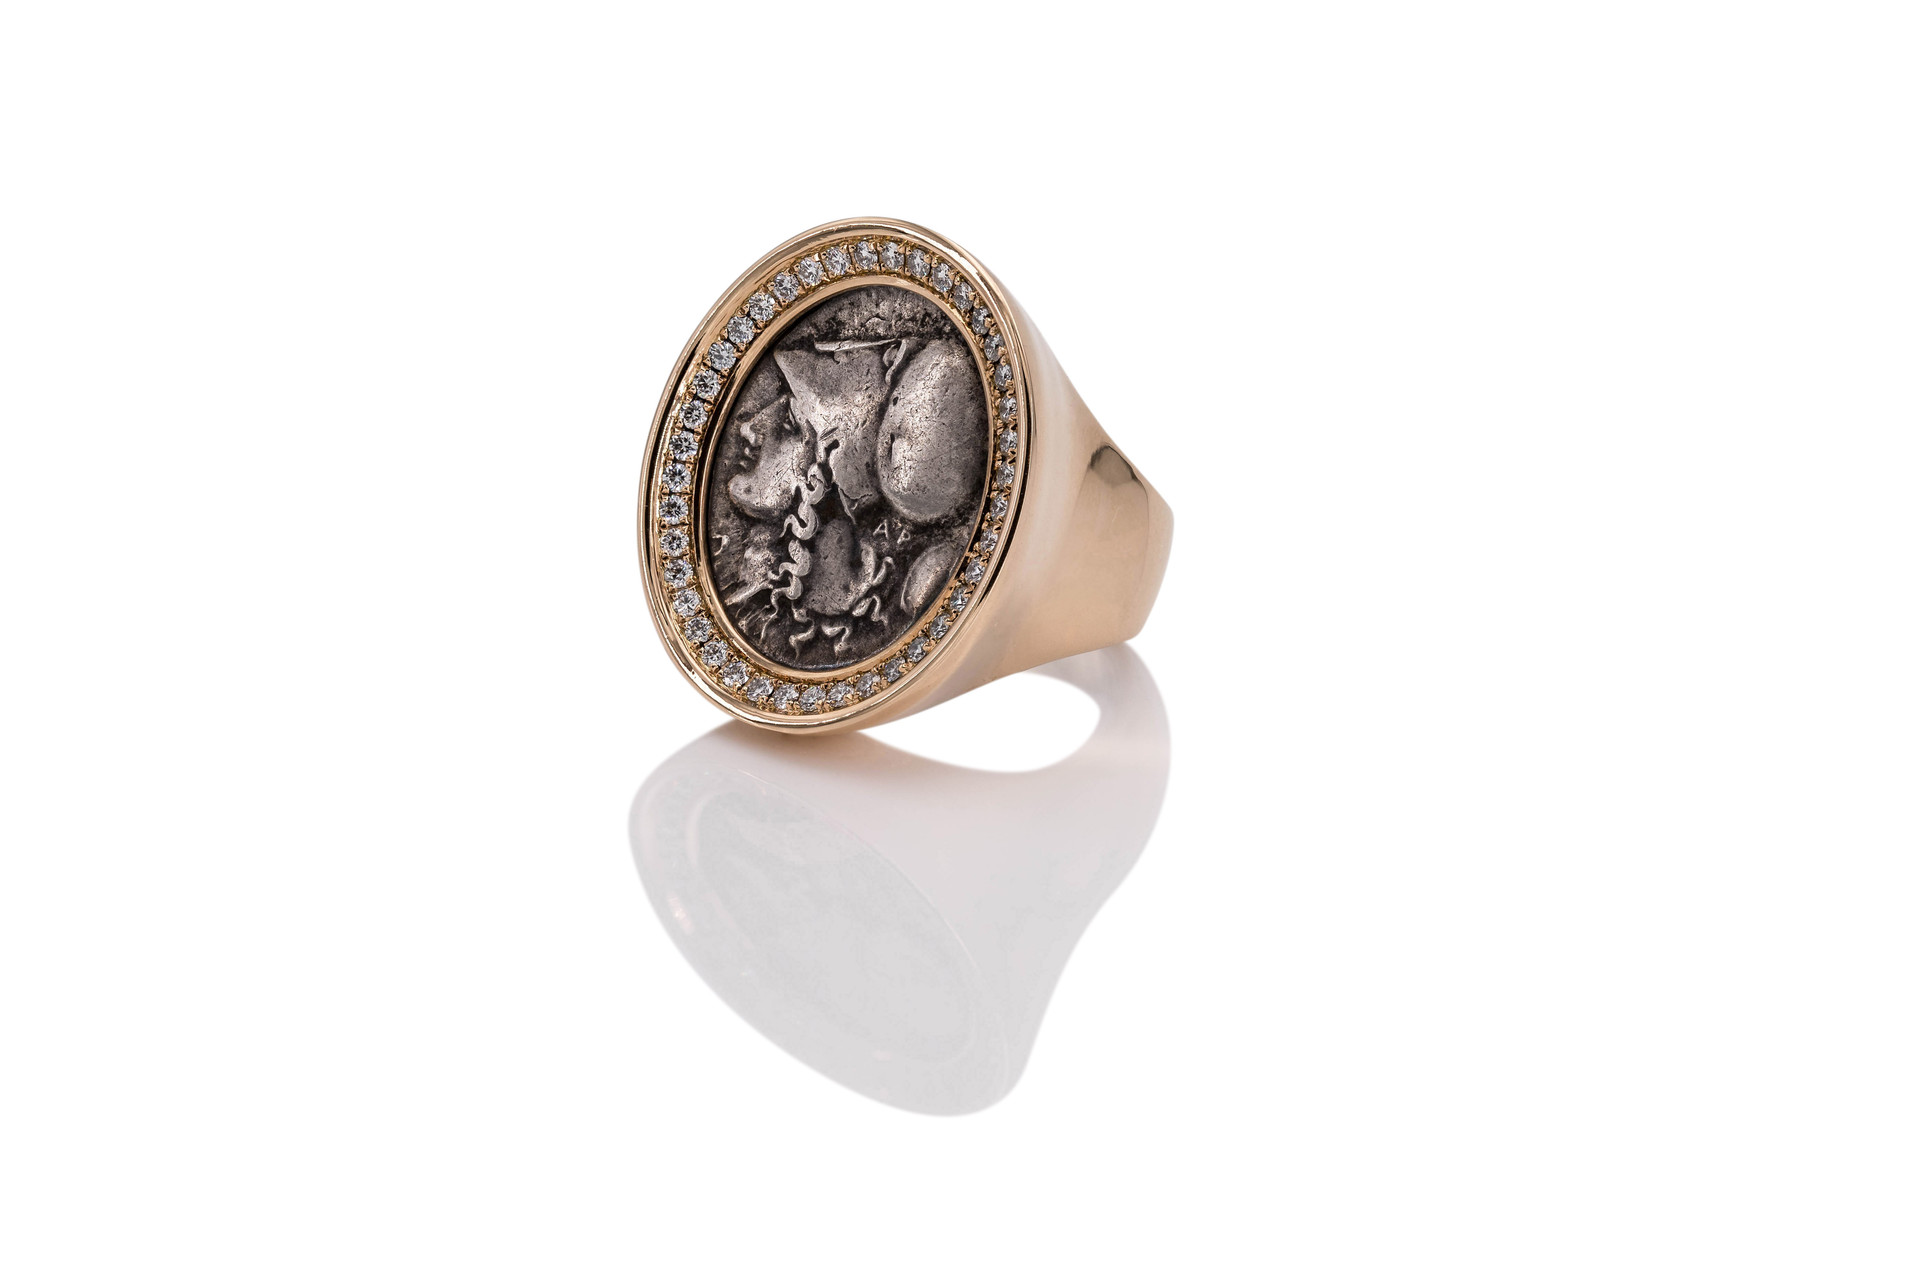 18k GOLD RING | ATHENA | DIAMONDS 40 diamonds 0,55 ct tw-vsi ancient greek coin 325 b.c.  Athena or Athene, is the ancient Greek goddess of wisdom, handicraft, and warfare. In later times, Athena was syncretized with the Roman goddess Minerva.